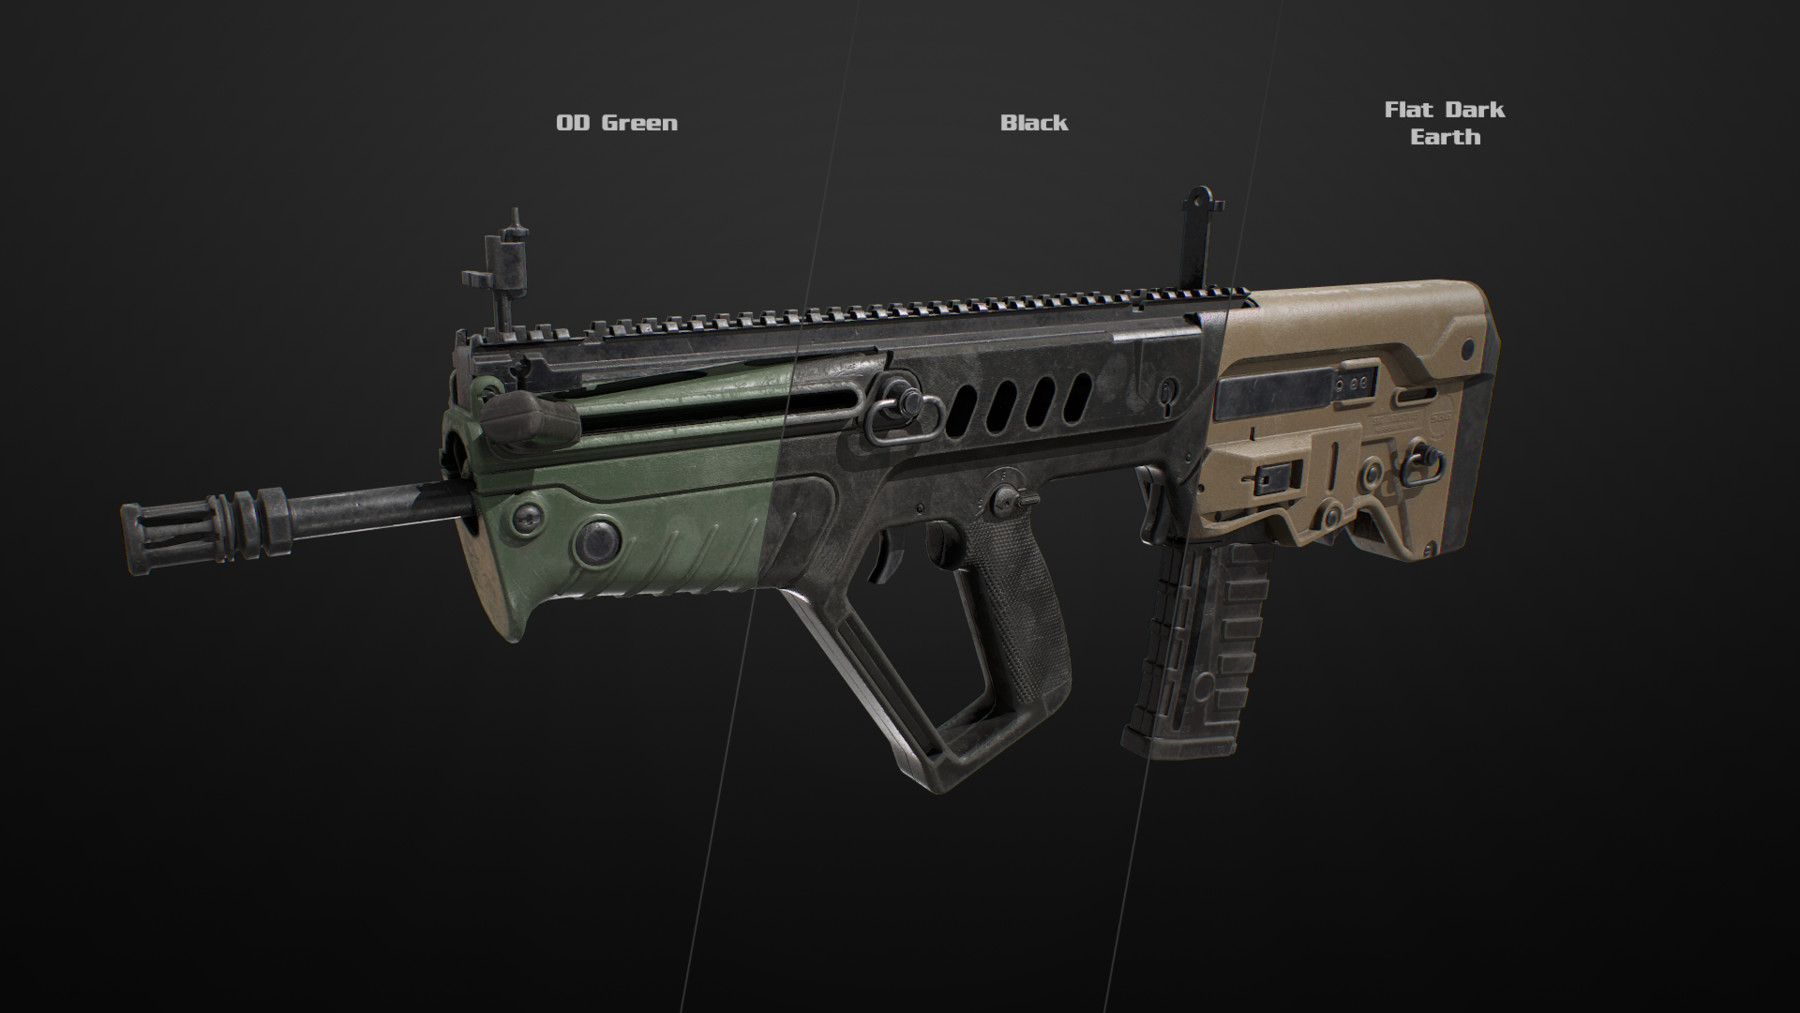 Sbg ar556 colors